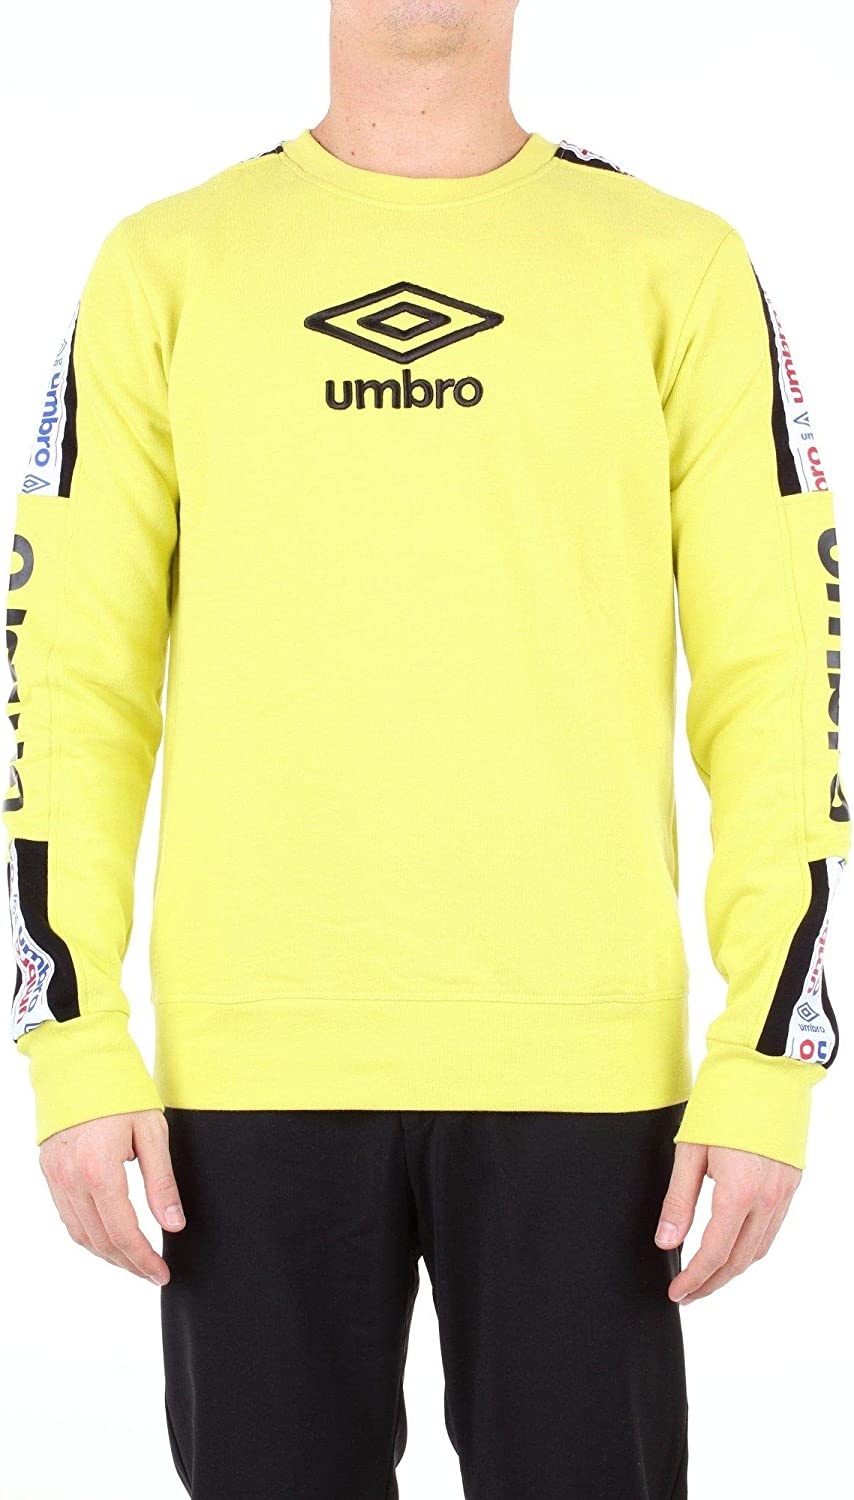 umbro outlet